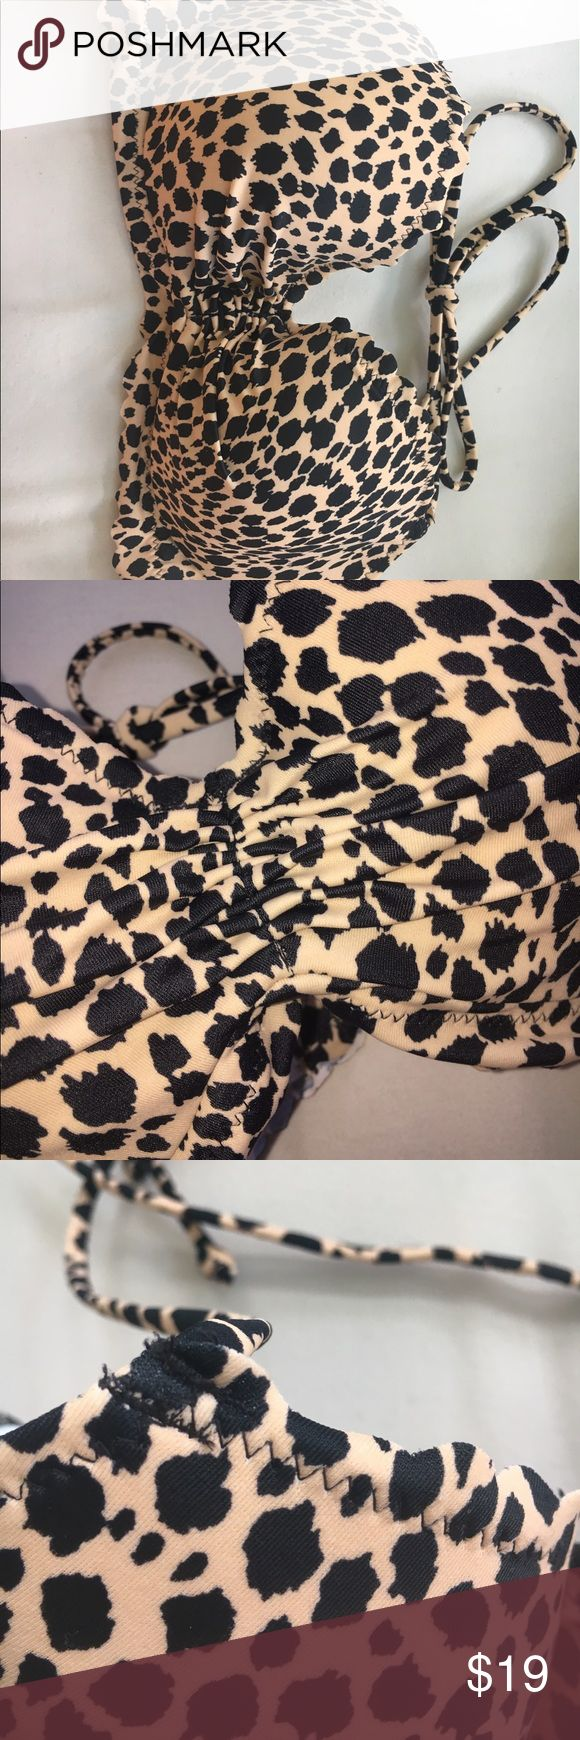 VS Leopard Print Bikini Top Perfect condition. No flaws besides thread snags. 80% polyamide 20% elastane. I don't recall ever wearing this besides trying it on. Amazing feel. Ruffle in the middle. Overall cute bathing suit top, and comfy! Lightly lined with underwire Victoria's Secret Swim Bikinis